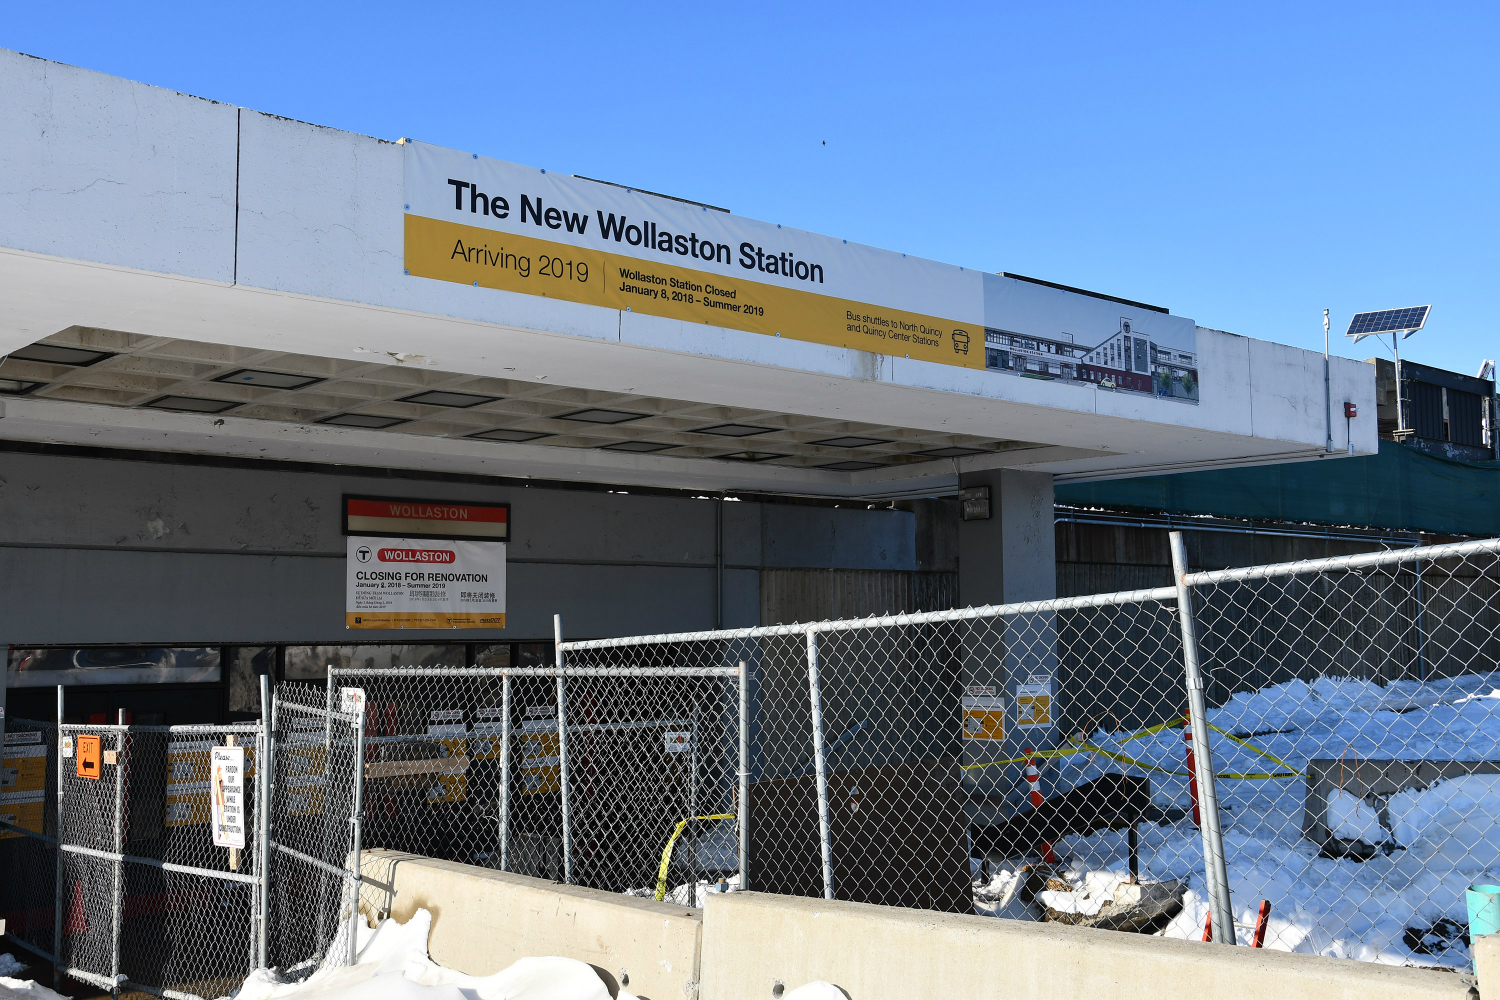 Wollaston Station with a banner that says, 'The New Wollaston Station Arriving 2019.' Fencing blocks off the station to passengers. There is also a smaller sign that says 'Closed for Renovation.'